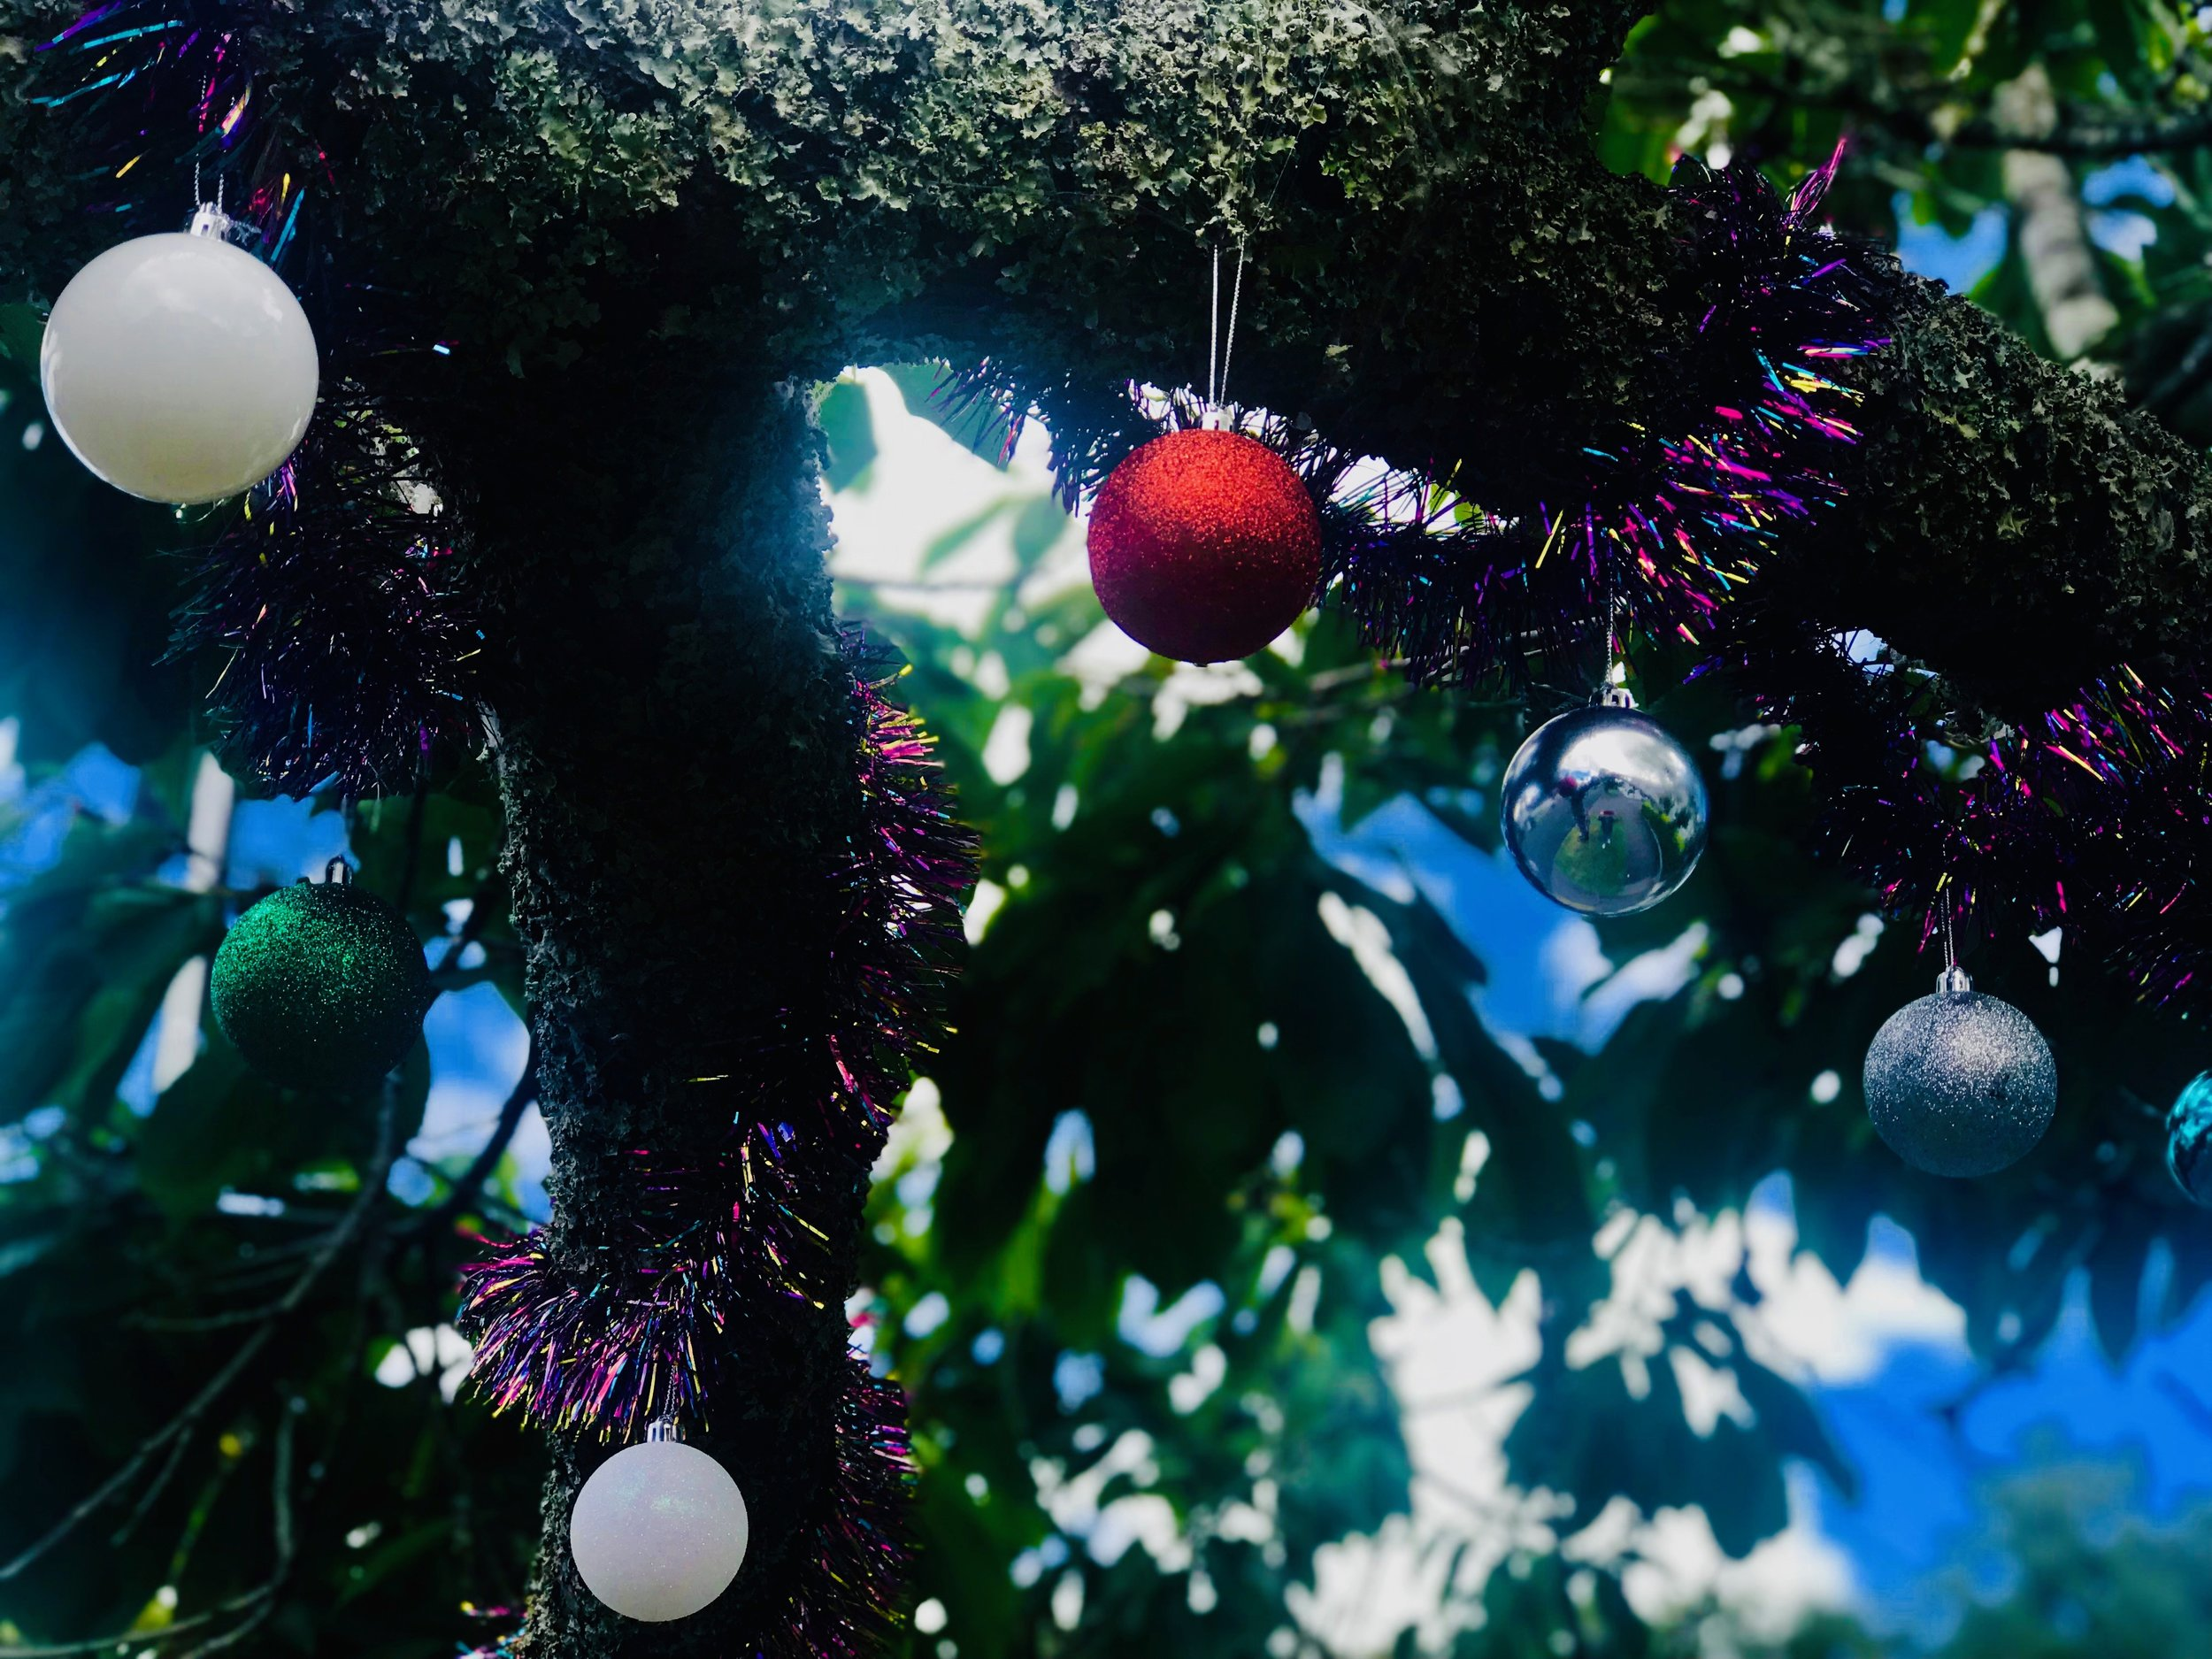 This Christmas tree is the same one we featured in our final post last year - it's street side in Auckland's Herne Bay and is decorated every festive season by the family in the house behind it.